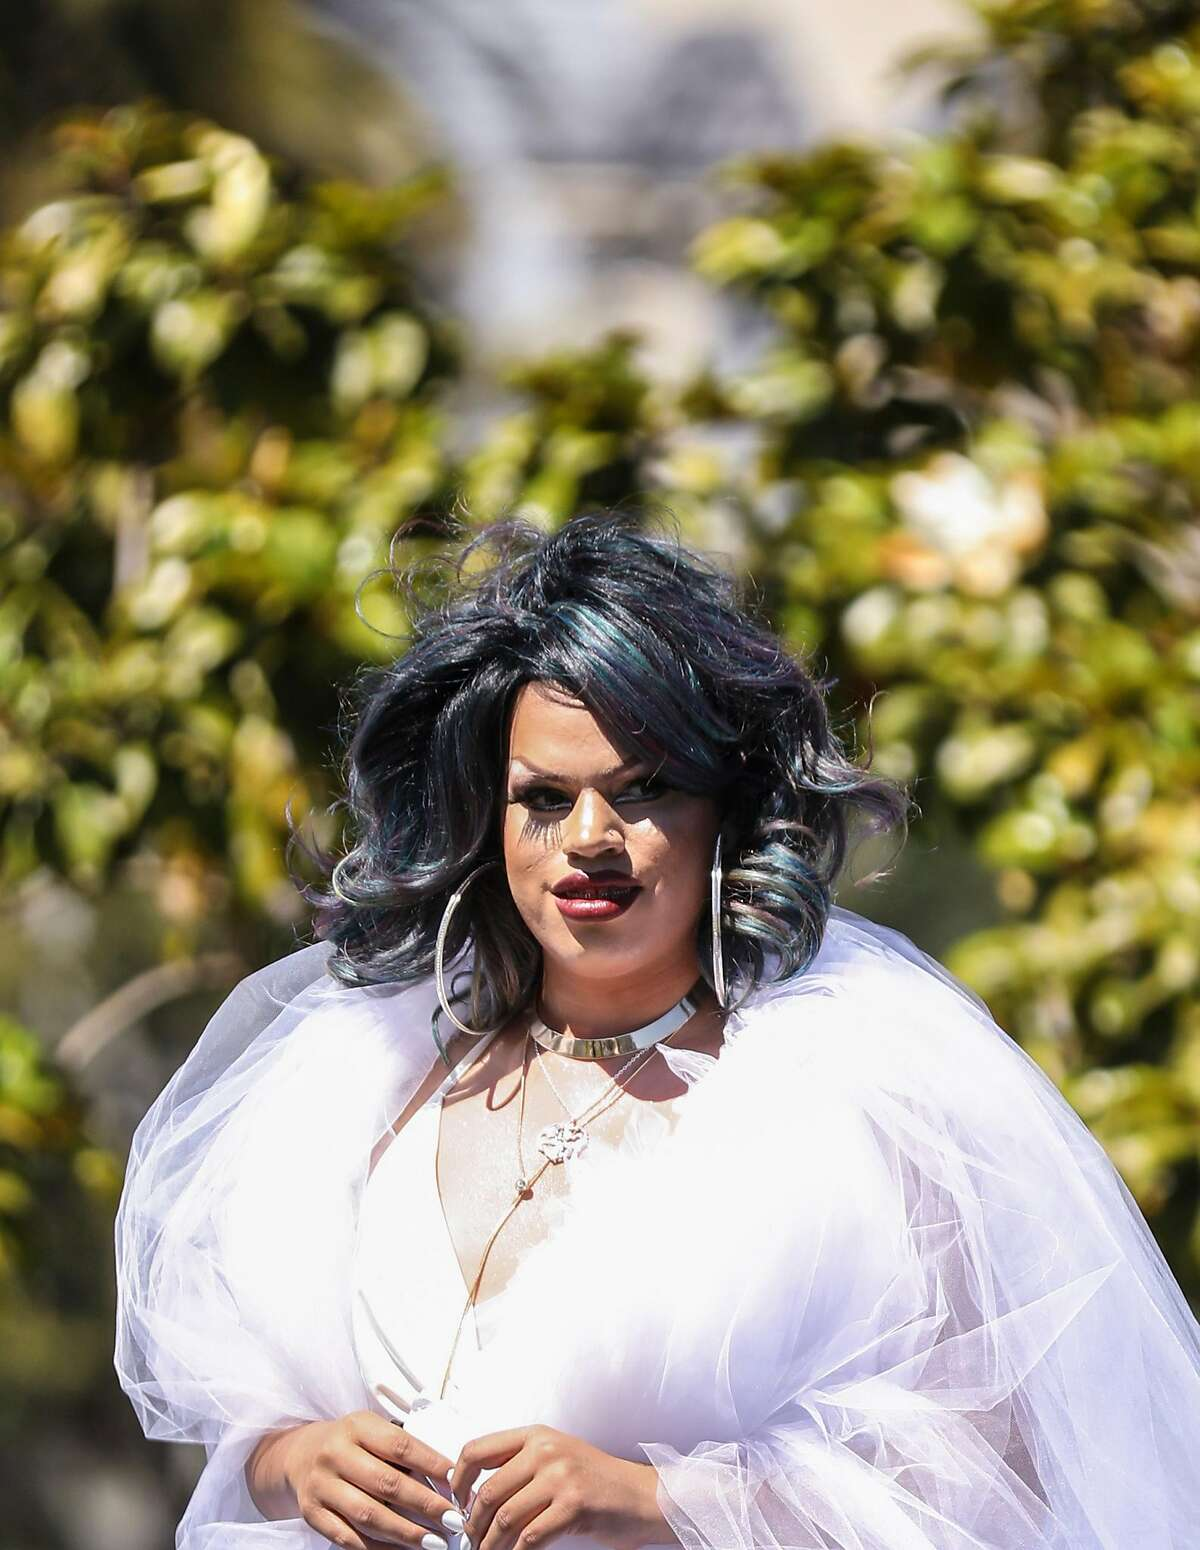 Local Trans activist and drag performer Rexy Amaral sports a flowing white dress while MC'ing the annual Trans March at Mission Dolores Park in San Francisco, Calif. Thursday, June 21, 2018.